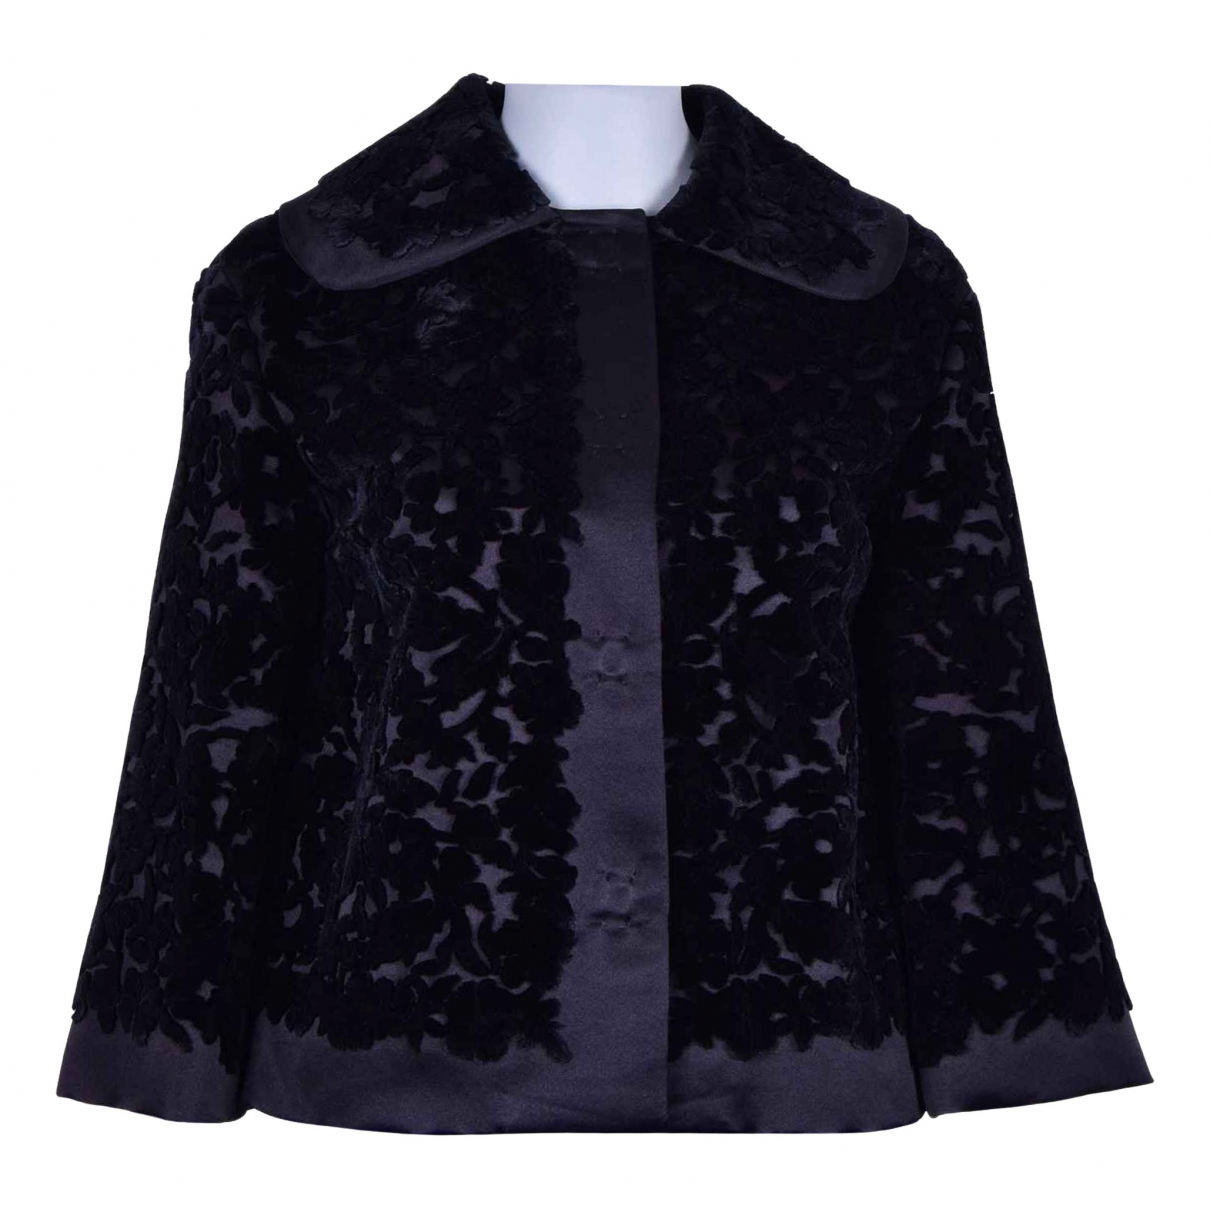 Dolce & Gabbana N Black Silk jacket for Women 40 IT